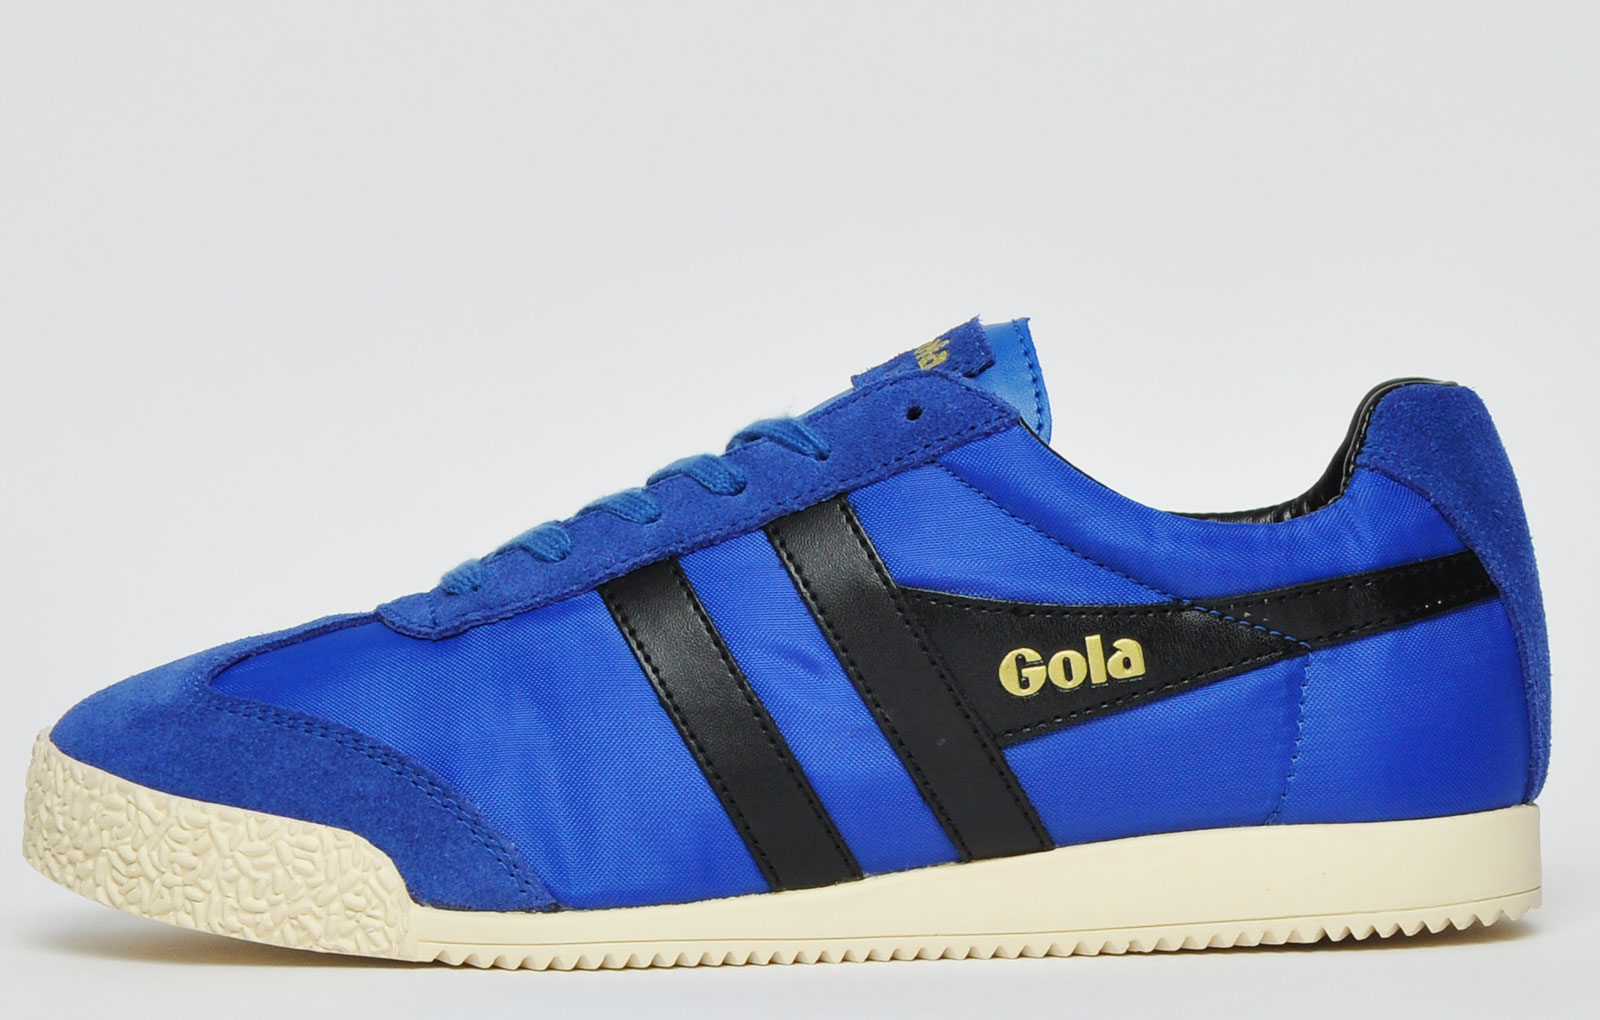 ef1db5bff22 Men's Gola Trainers Sale | Cheap Gola Trainers | Express Trainers